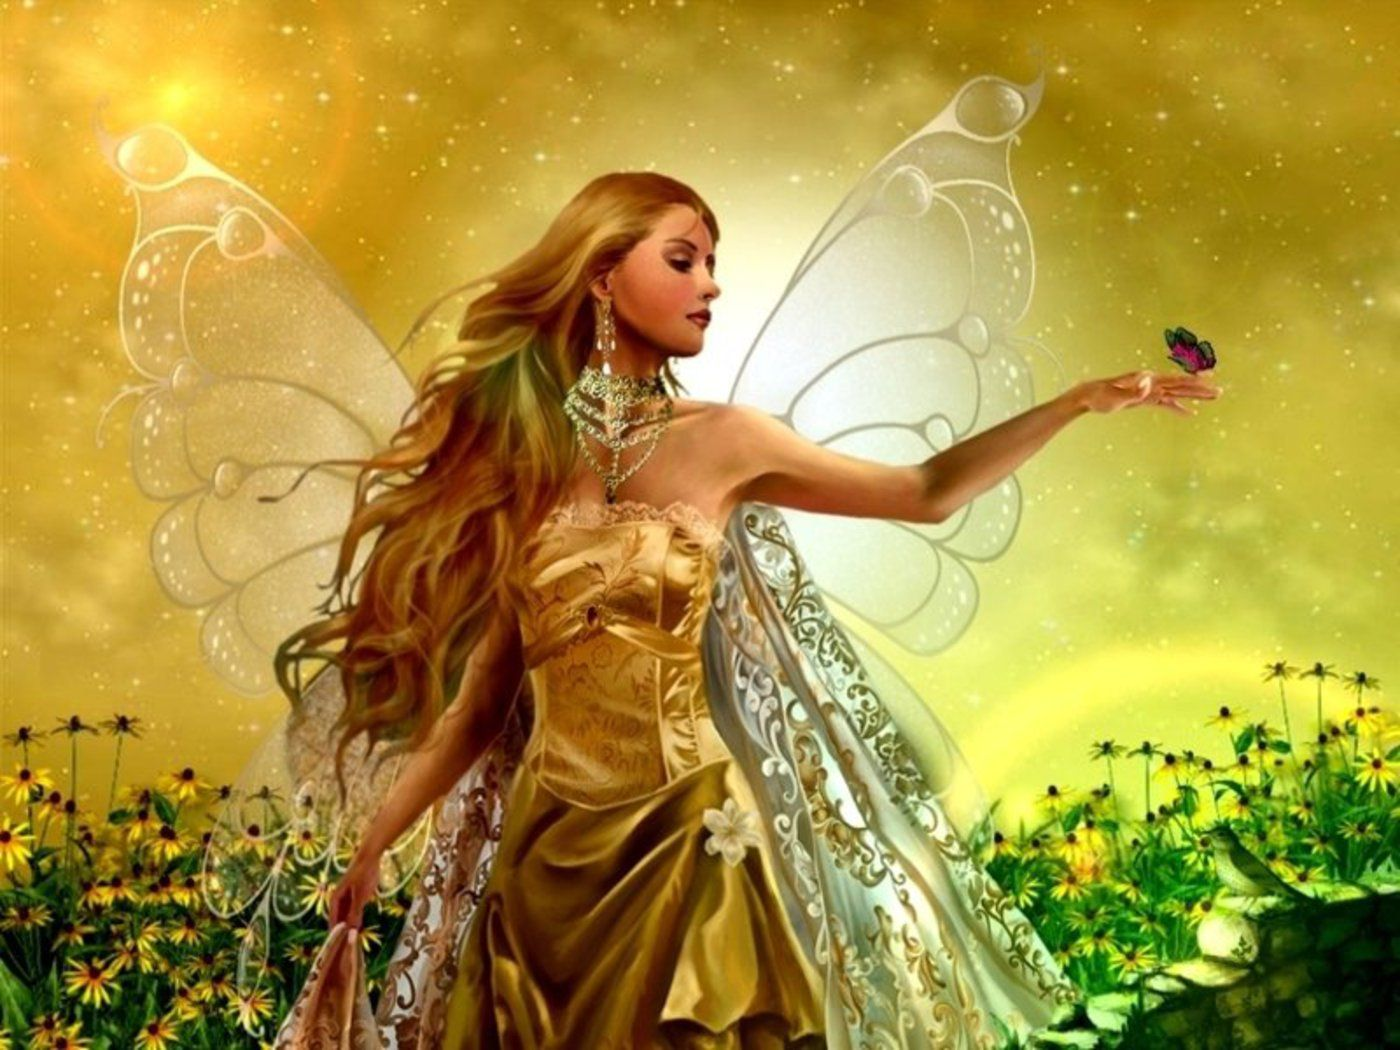 Fairy and butterfly angel wallpaper 1400x1050 full hd wallpapers fairy and butterfly angel wallpaper 1400x1050 full hd wallpapers voltagebd Image collections